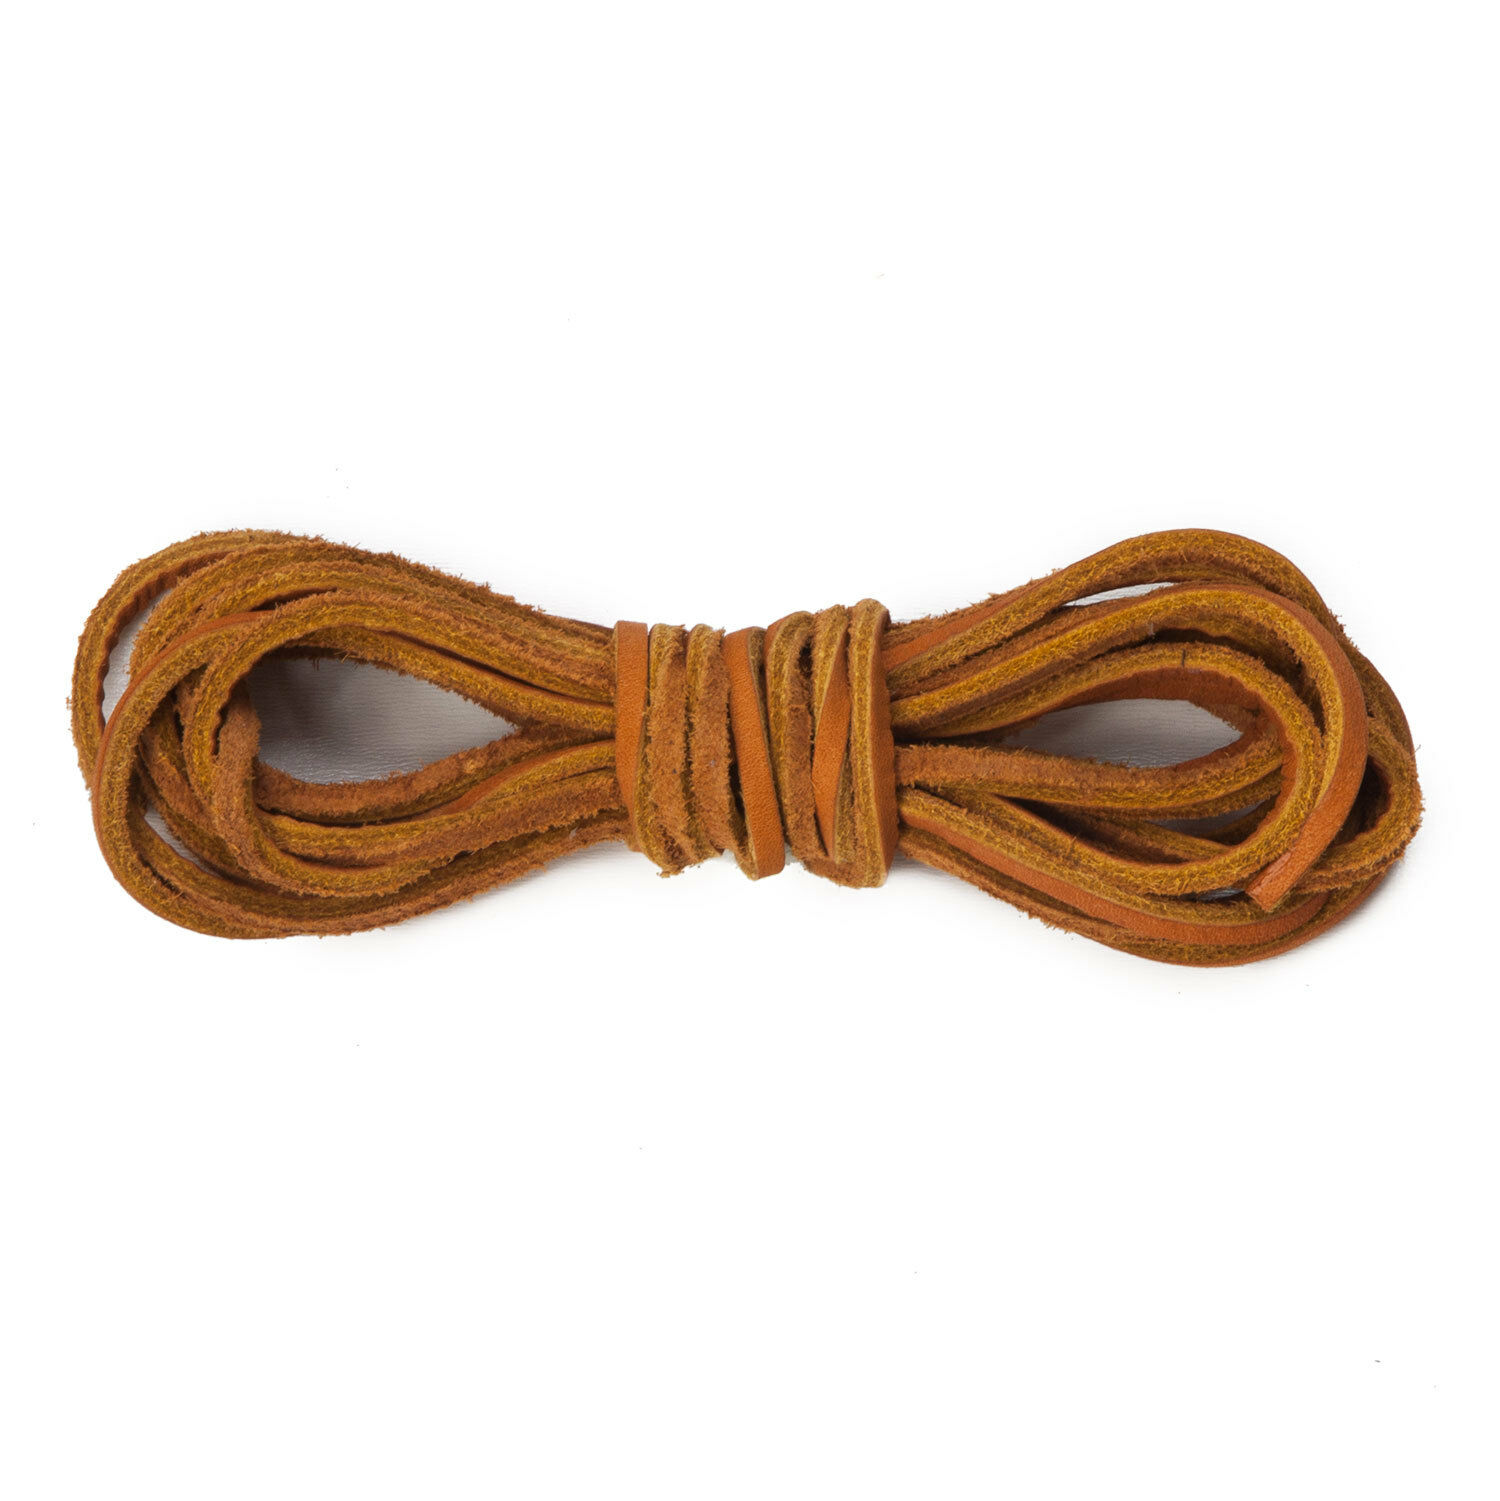 Leather Boot Shoe Laces Hiking or Work in All colors – 72 inches MADE IN USA (2) Clothing & Shoe Care